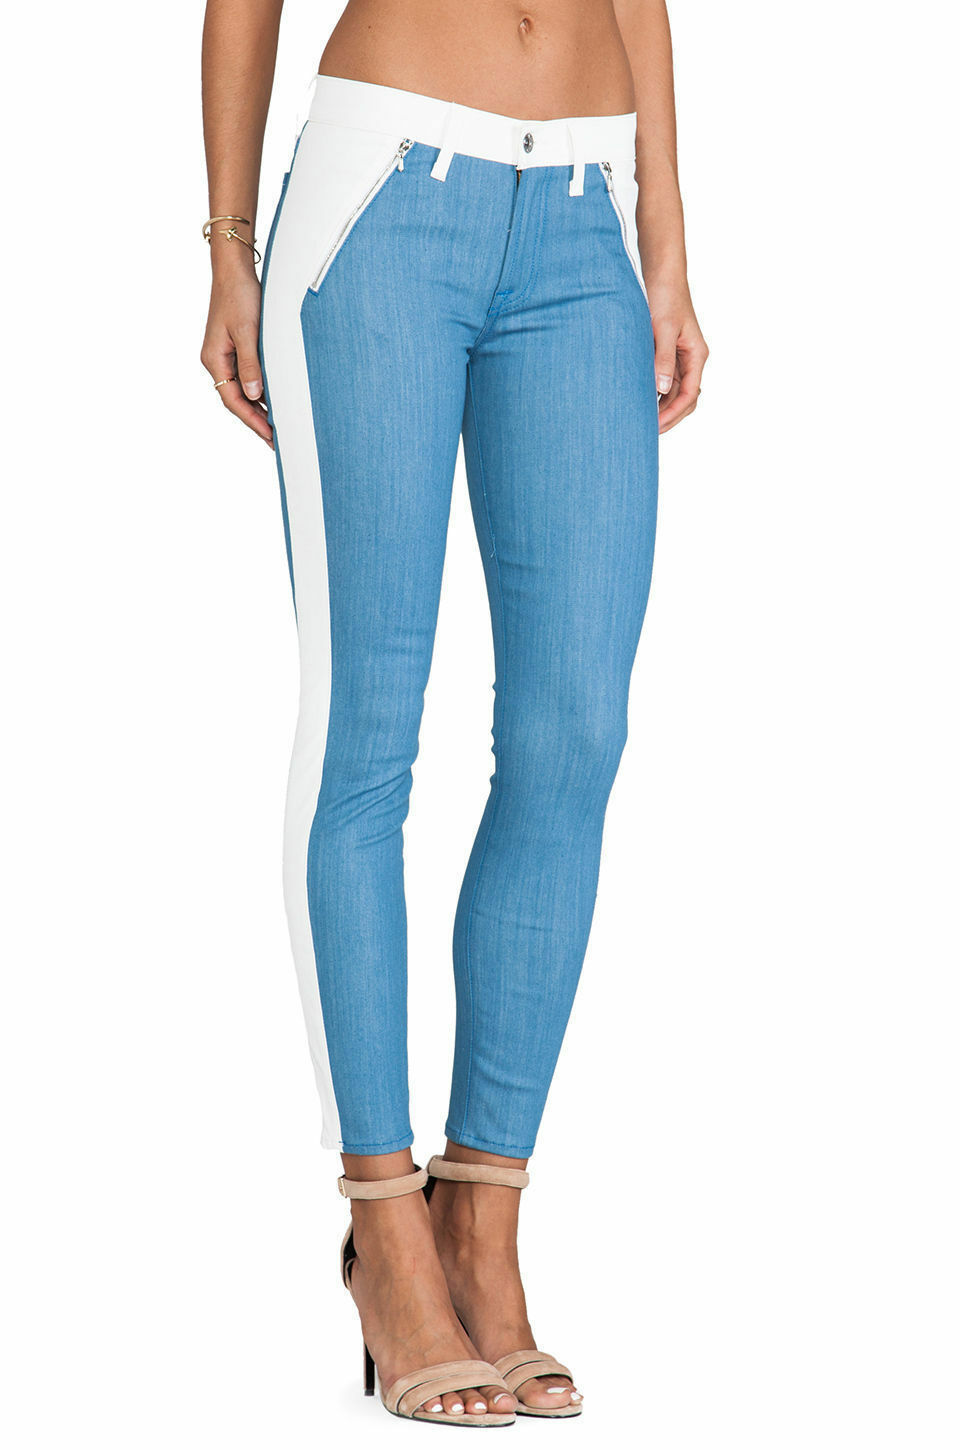 NWT Sz 24 7 For all Mankind Women's Skinny Jeans White bluee Faux Leather  235